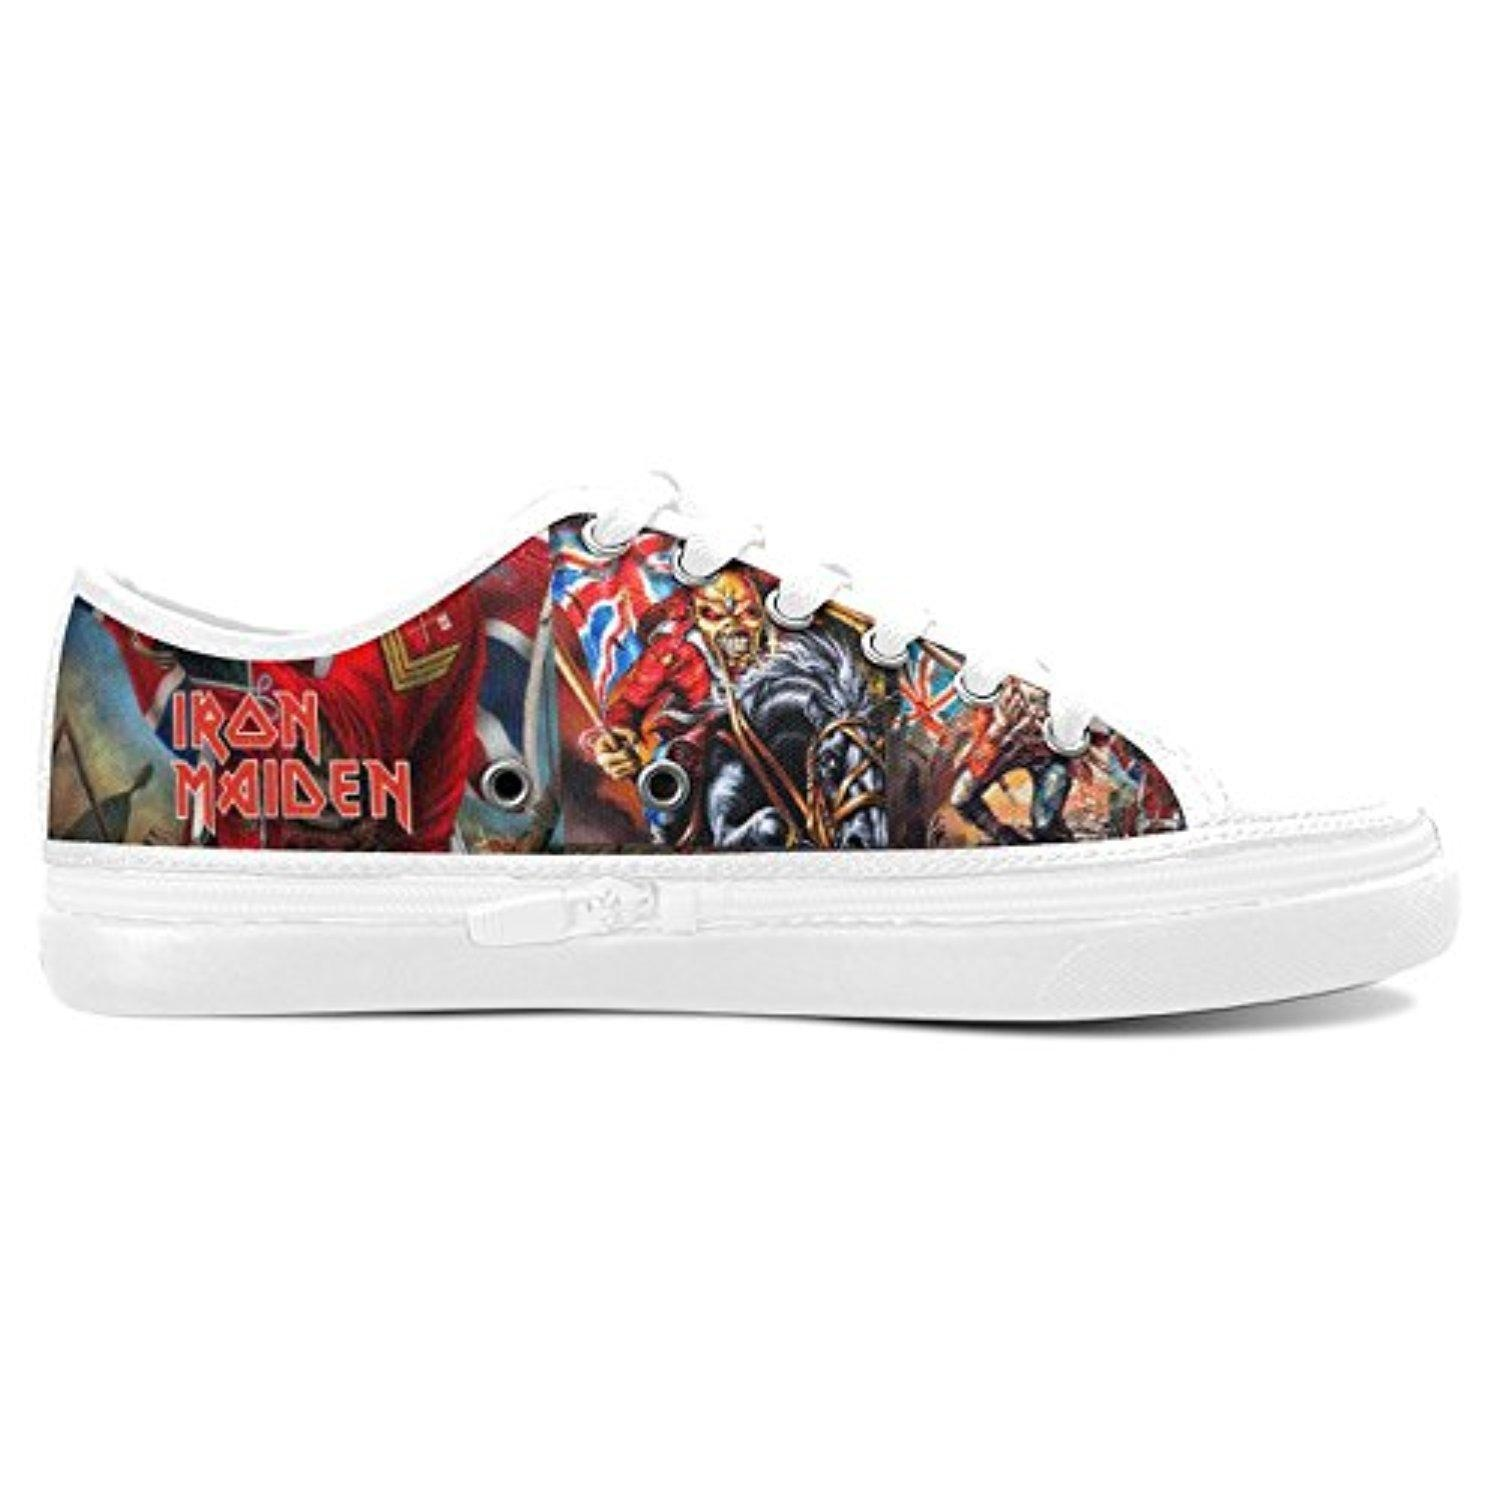 H-ome Art Iron Maiden Custom Women's Nonslip Zippered Canvas Shoes Sneakers,White